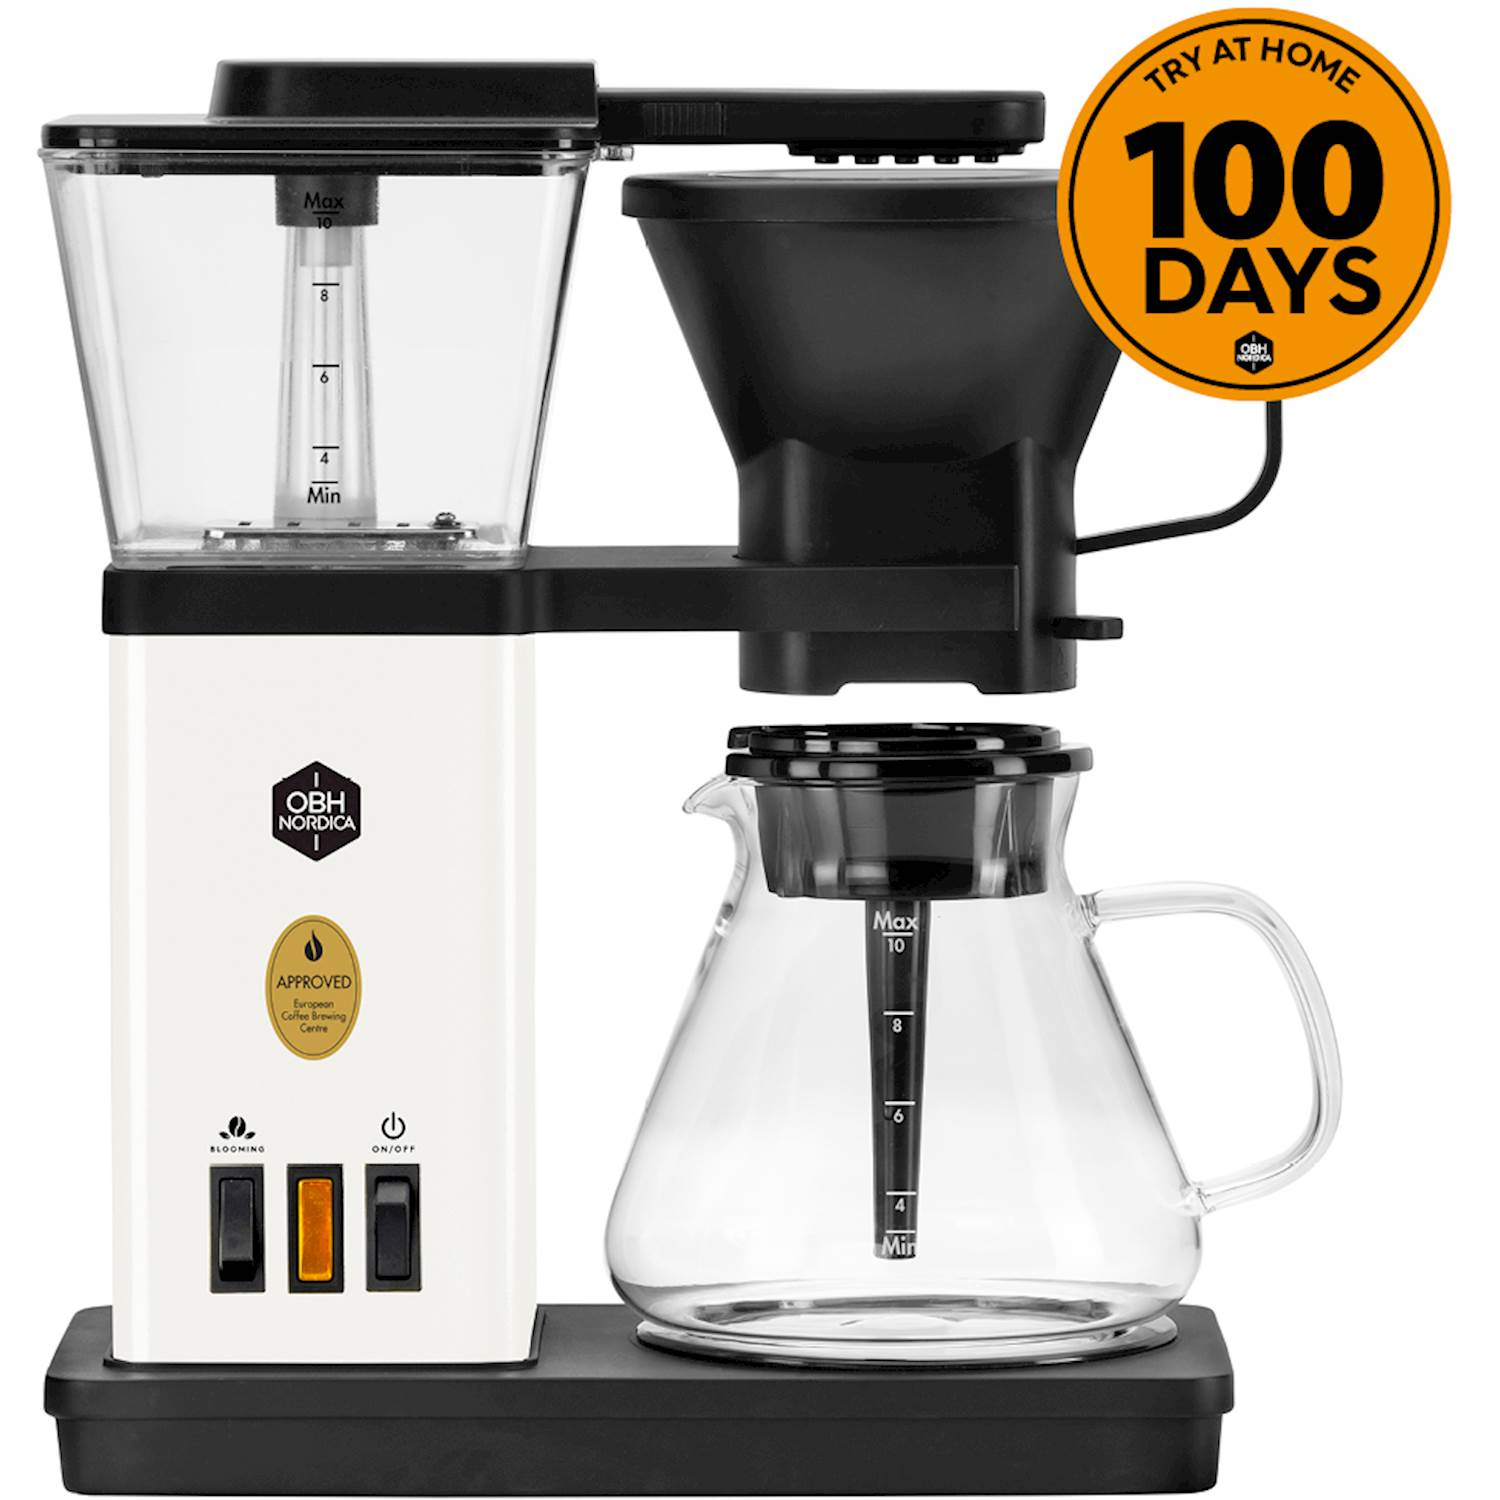 OBH Nordica Blooming coffee maker white